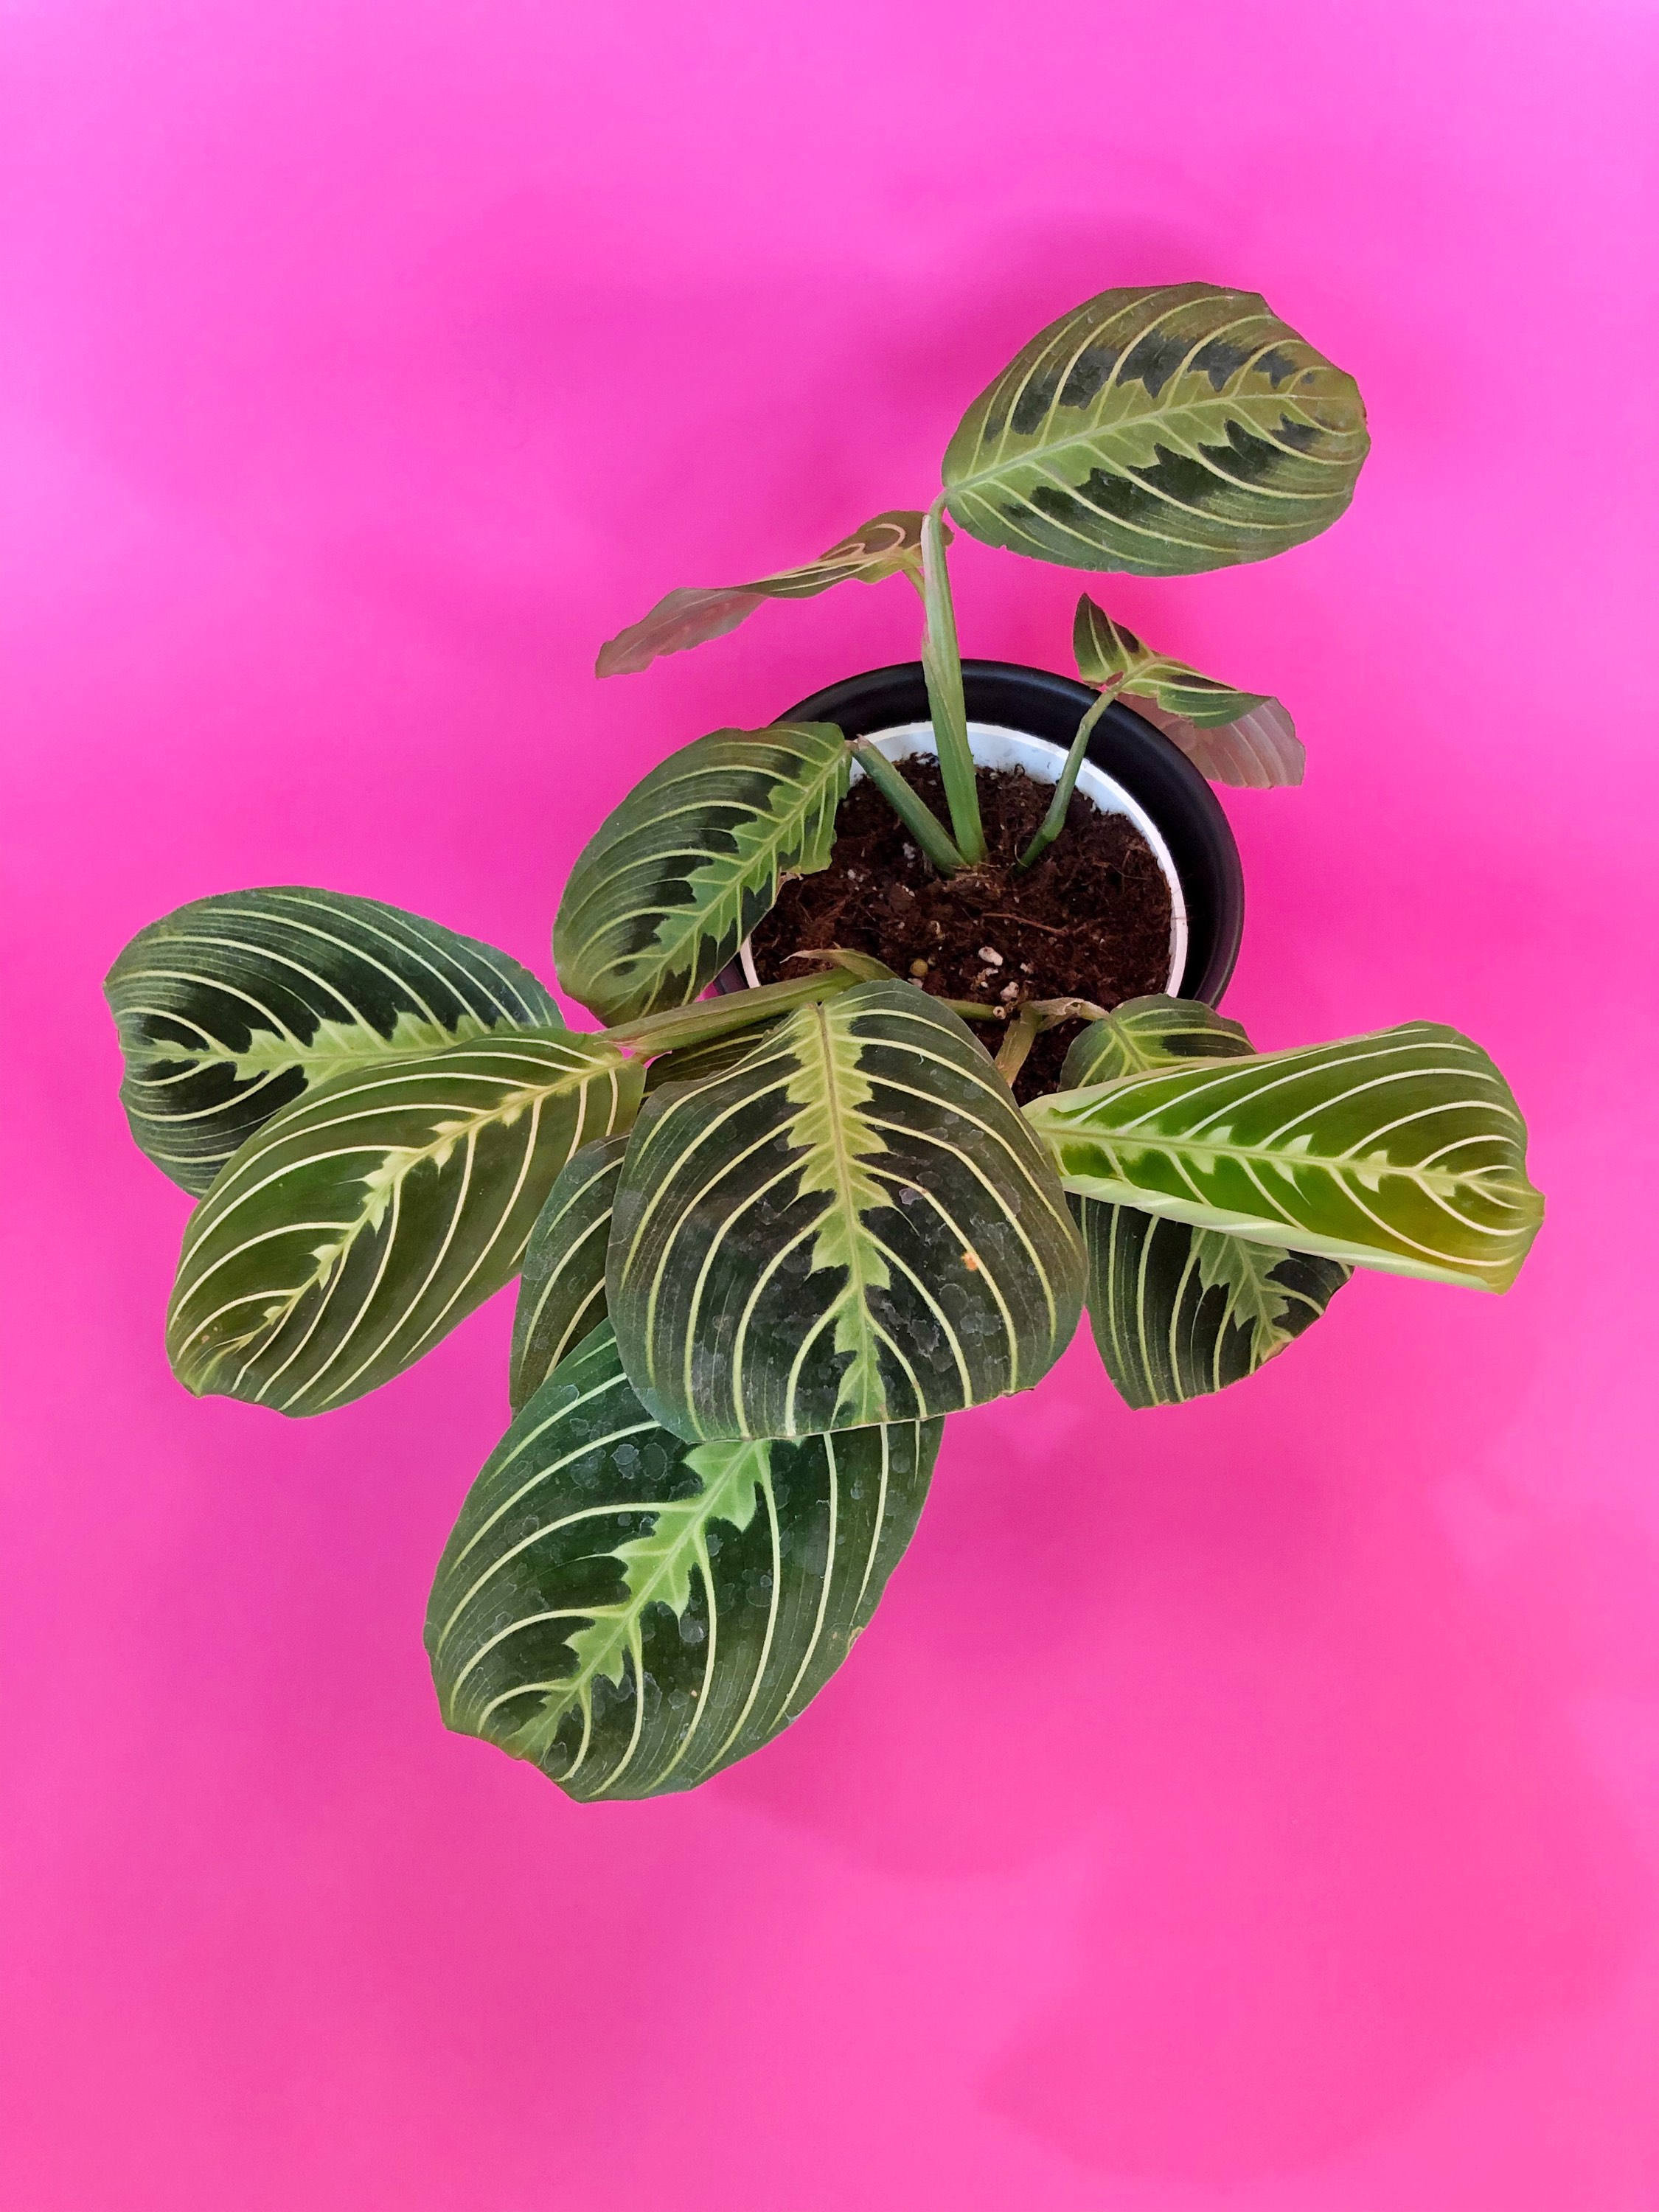 silver vase orchid care of maranta lemon suprise prayer plant 4 growers pot easy in dc29fc294c28ezoom